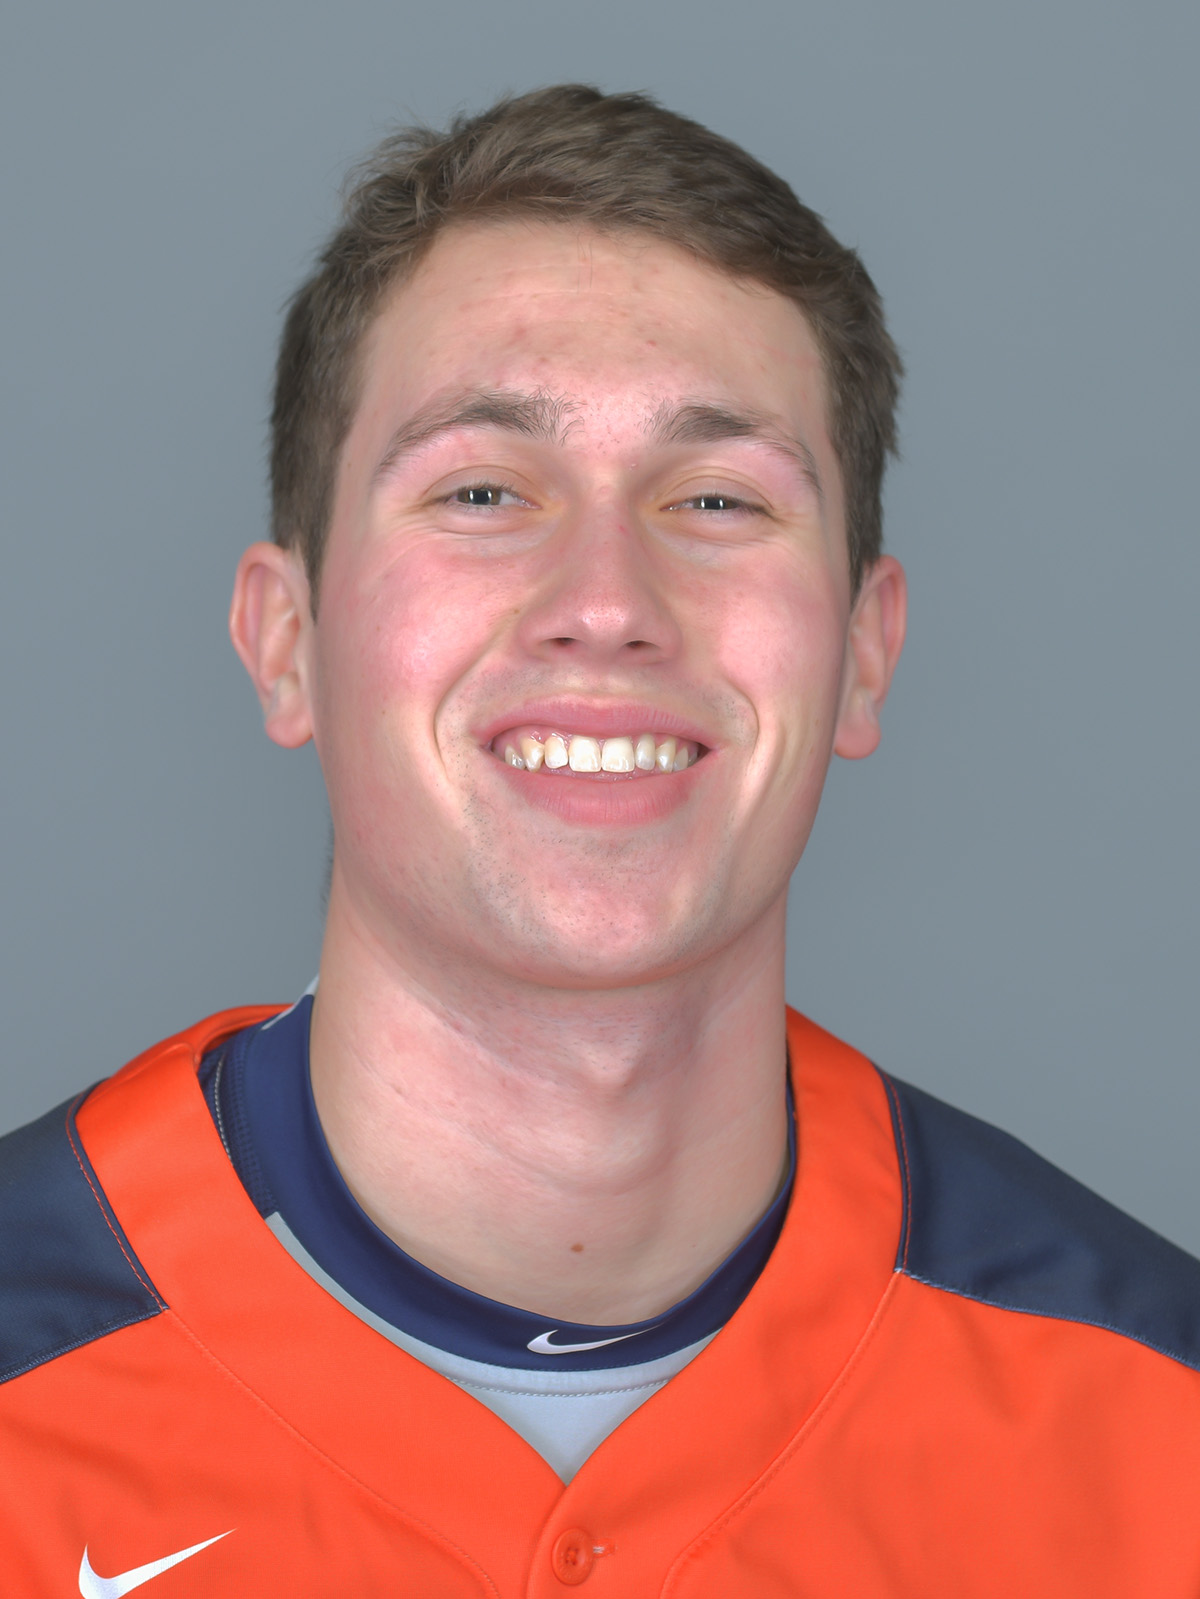 Evan Maday posing for a headshot